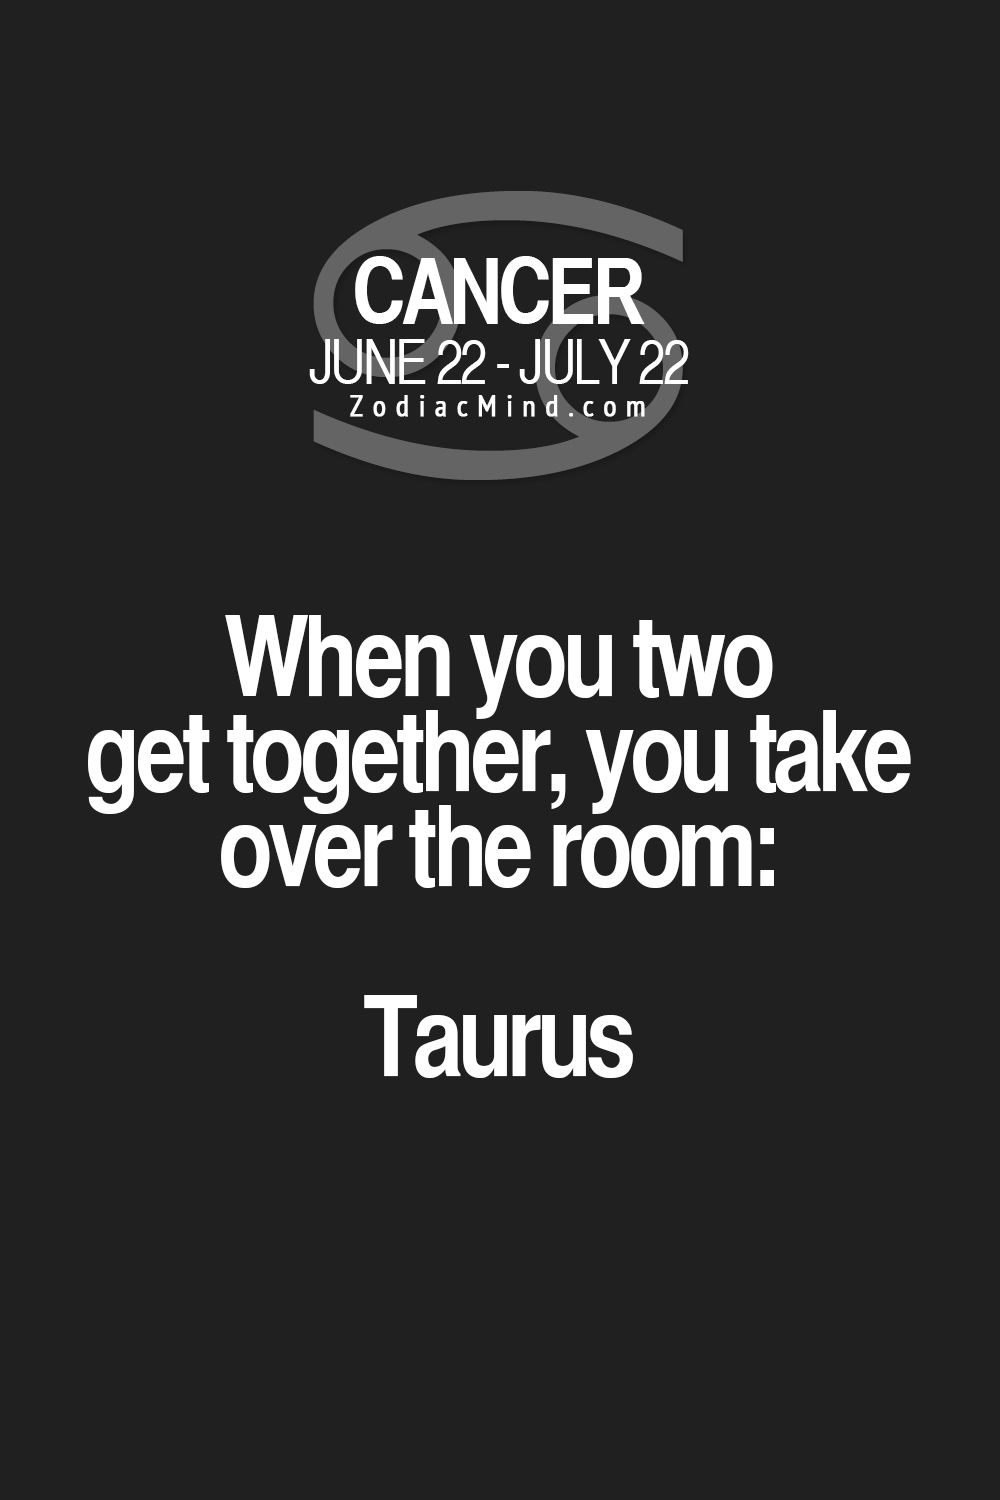 Cancer Sign Quotes I Don't Know About Taking Over A Room But My Brother Only